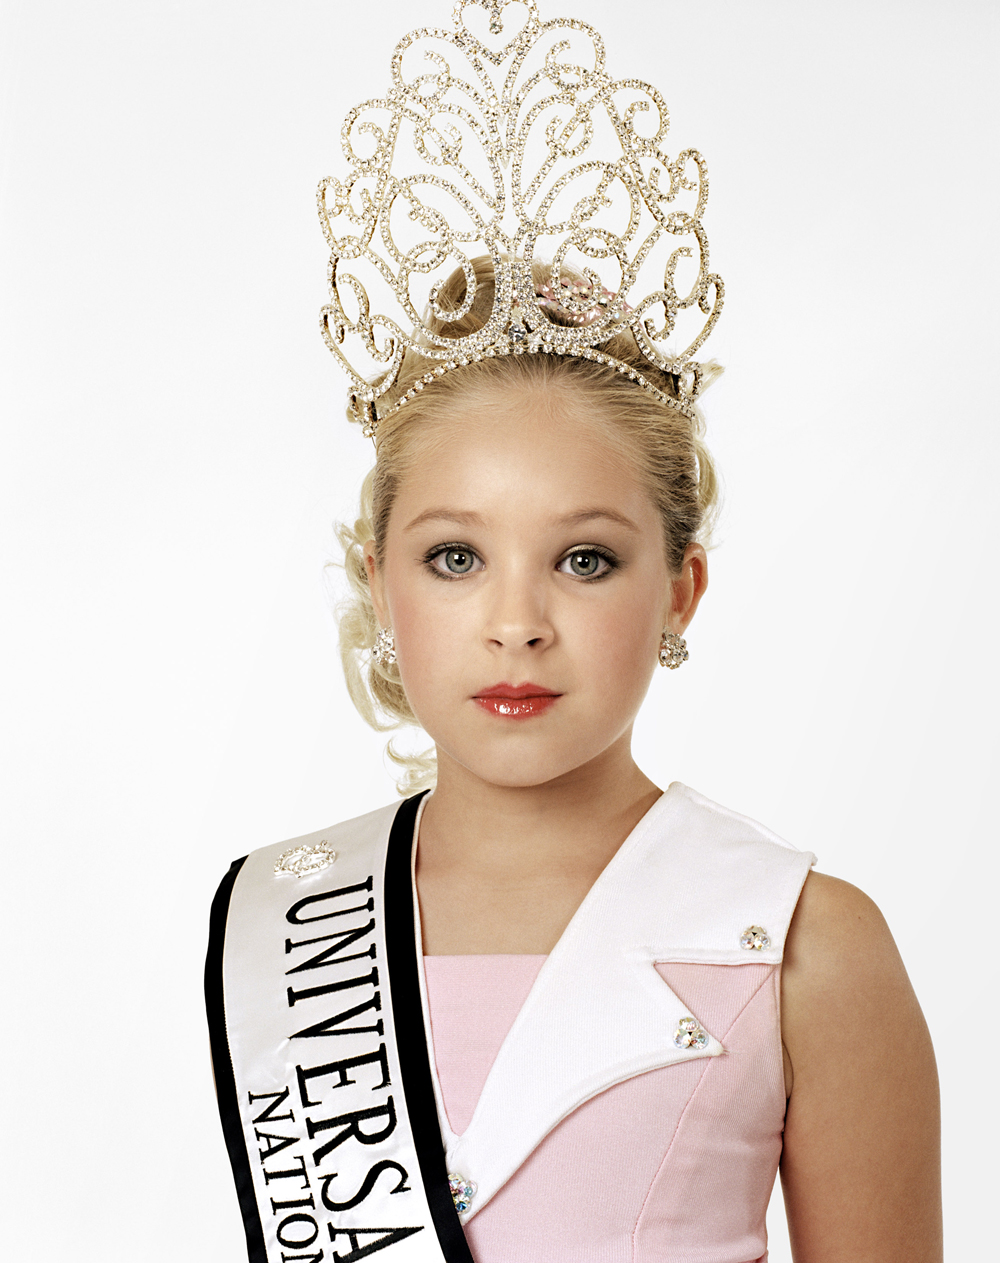 Katie, age 9. Winner. Universal Royalty Texas State Pageant. Texas, USA